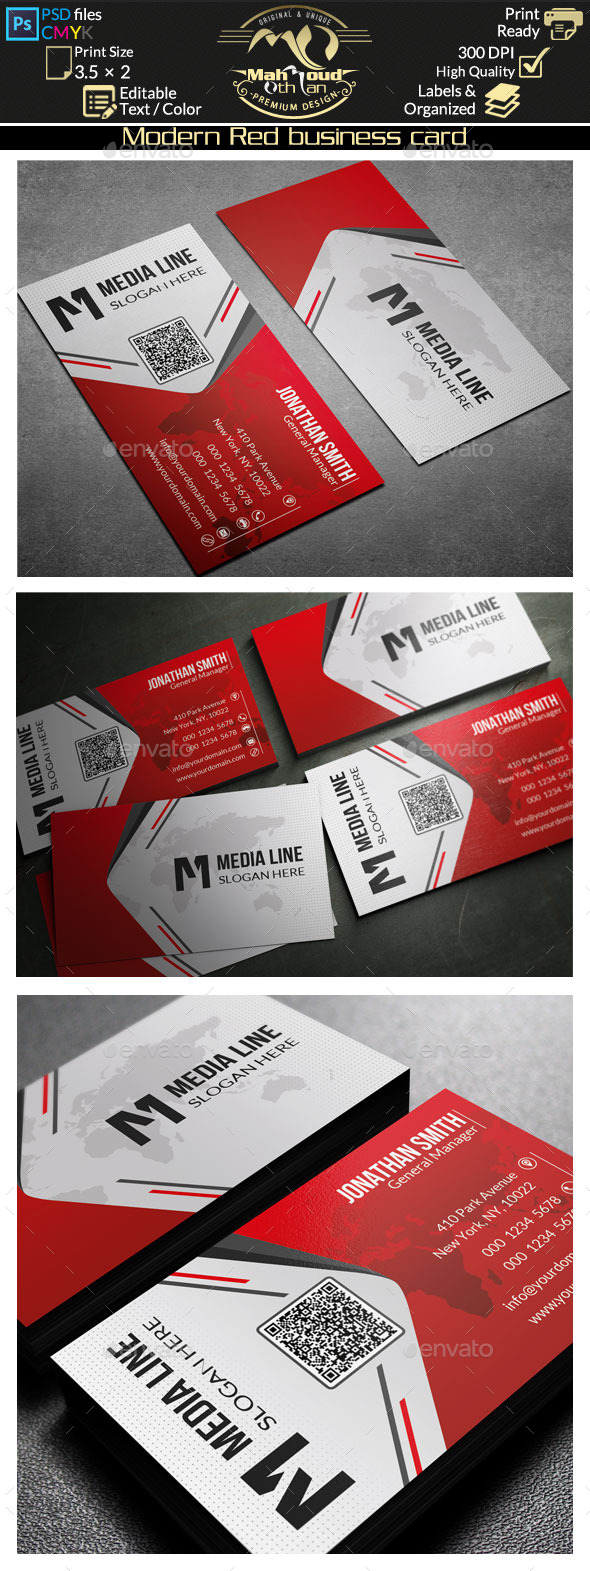 Modern Red Business Card - Corporate Business Cards